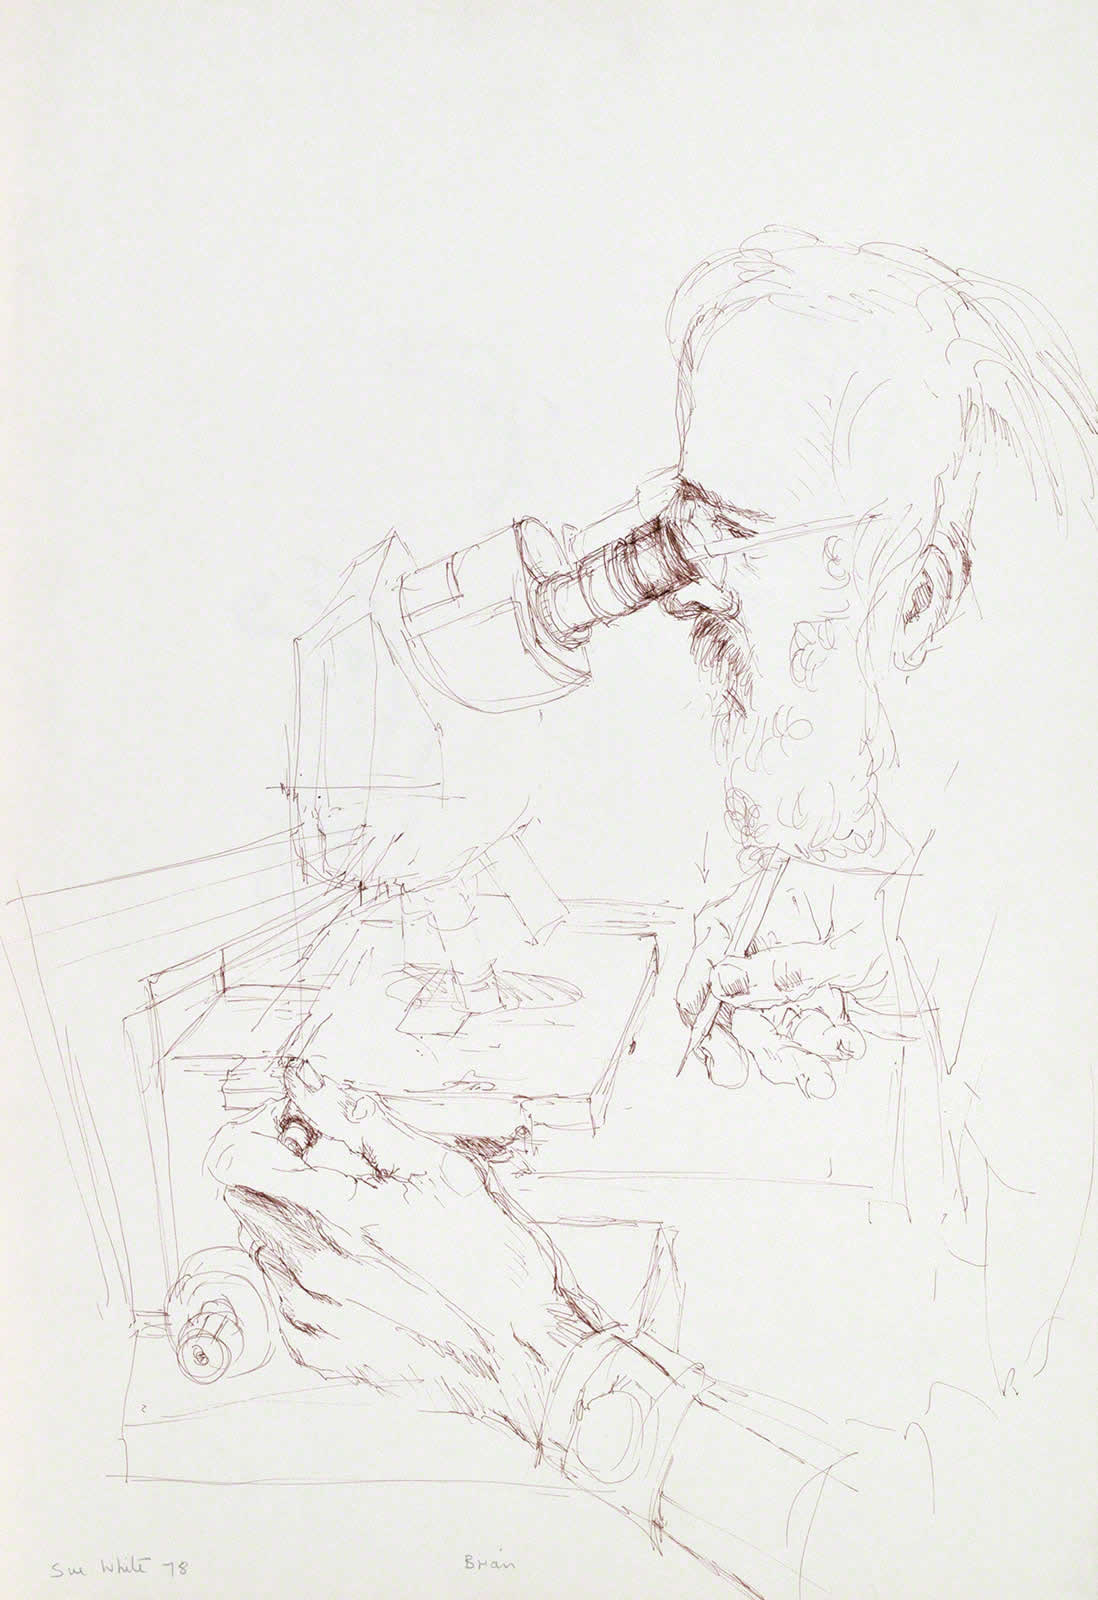 Scientist working at microscope: study for portrait 'Dr Brian Freeman' by Susan Dorothea White